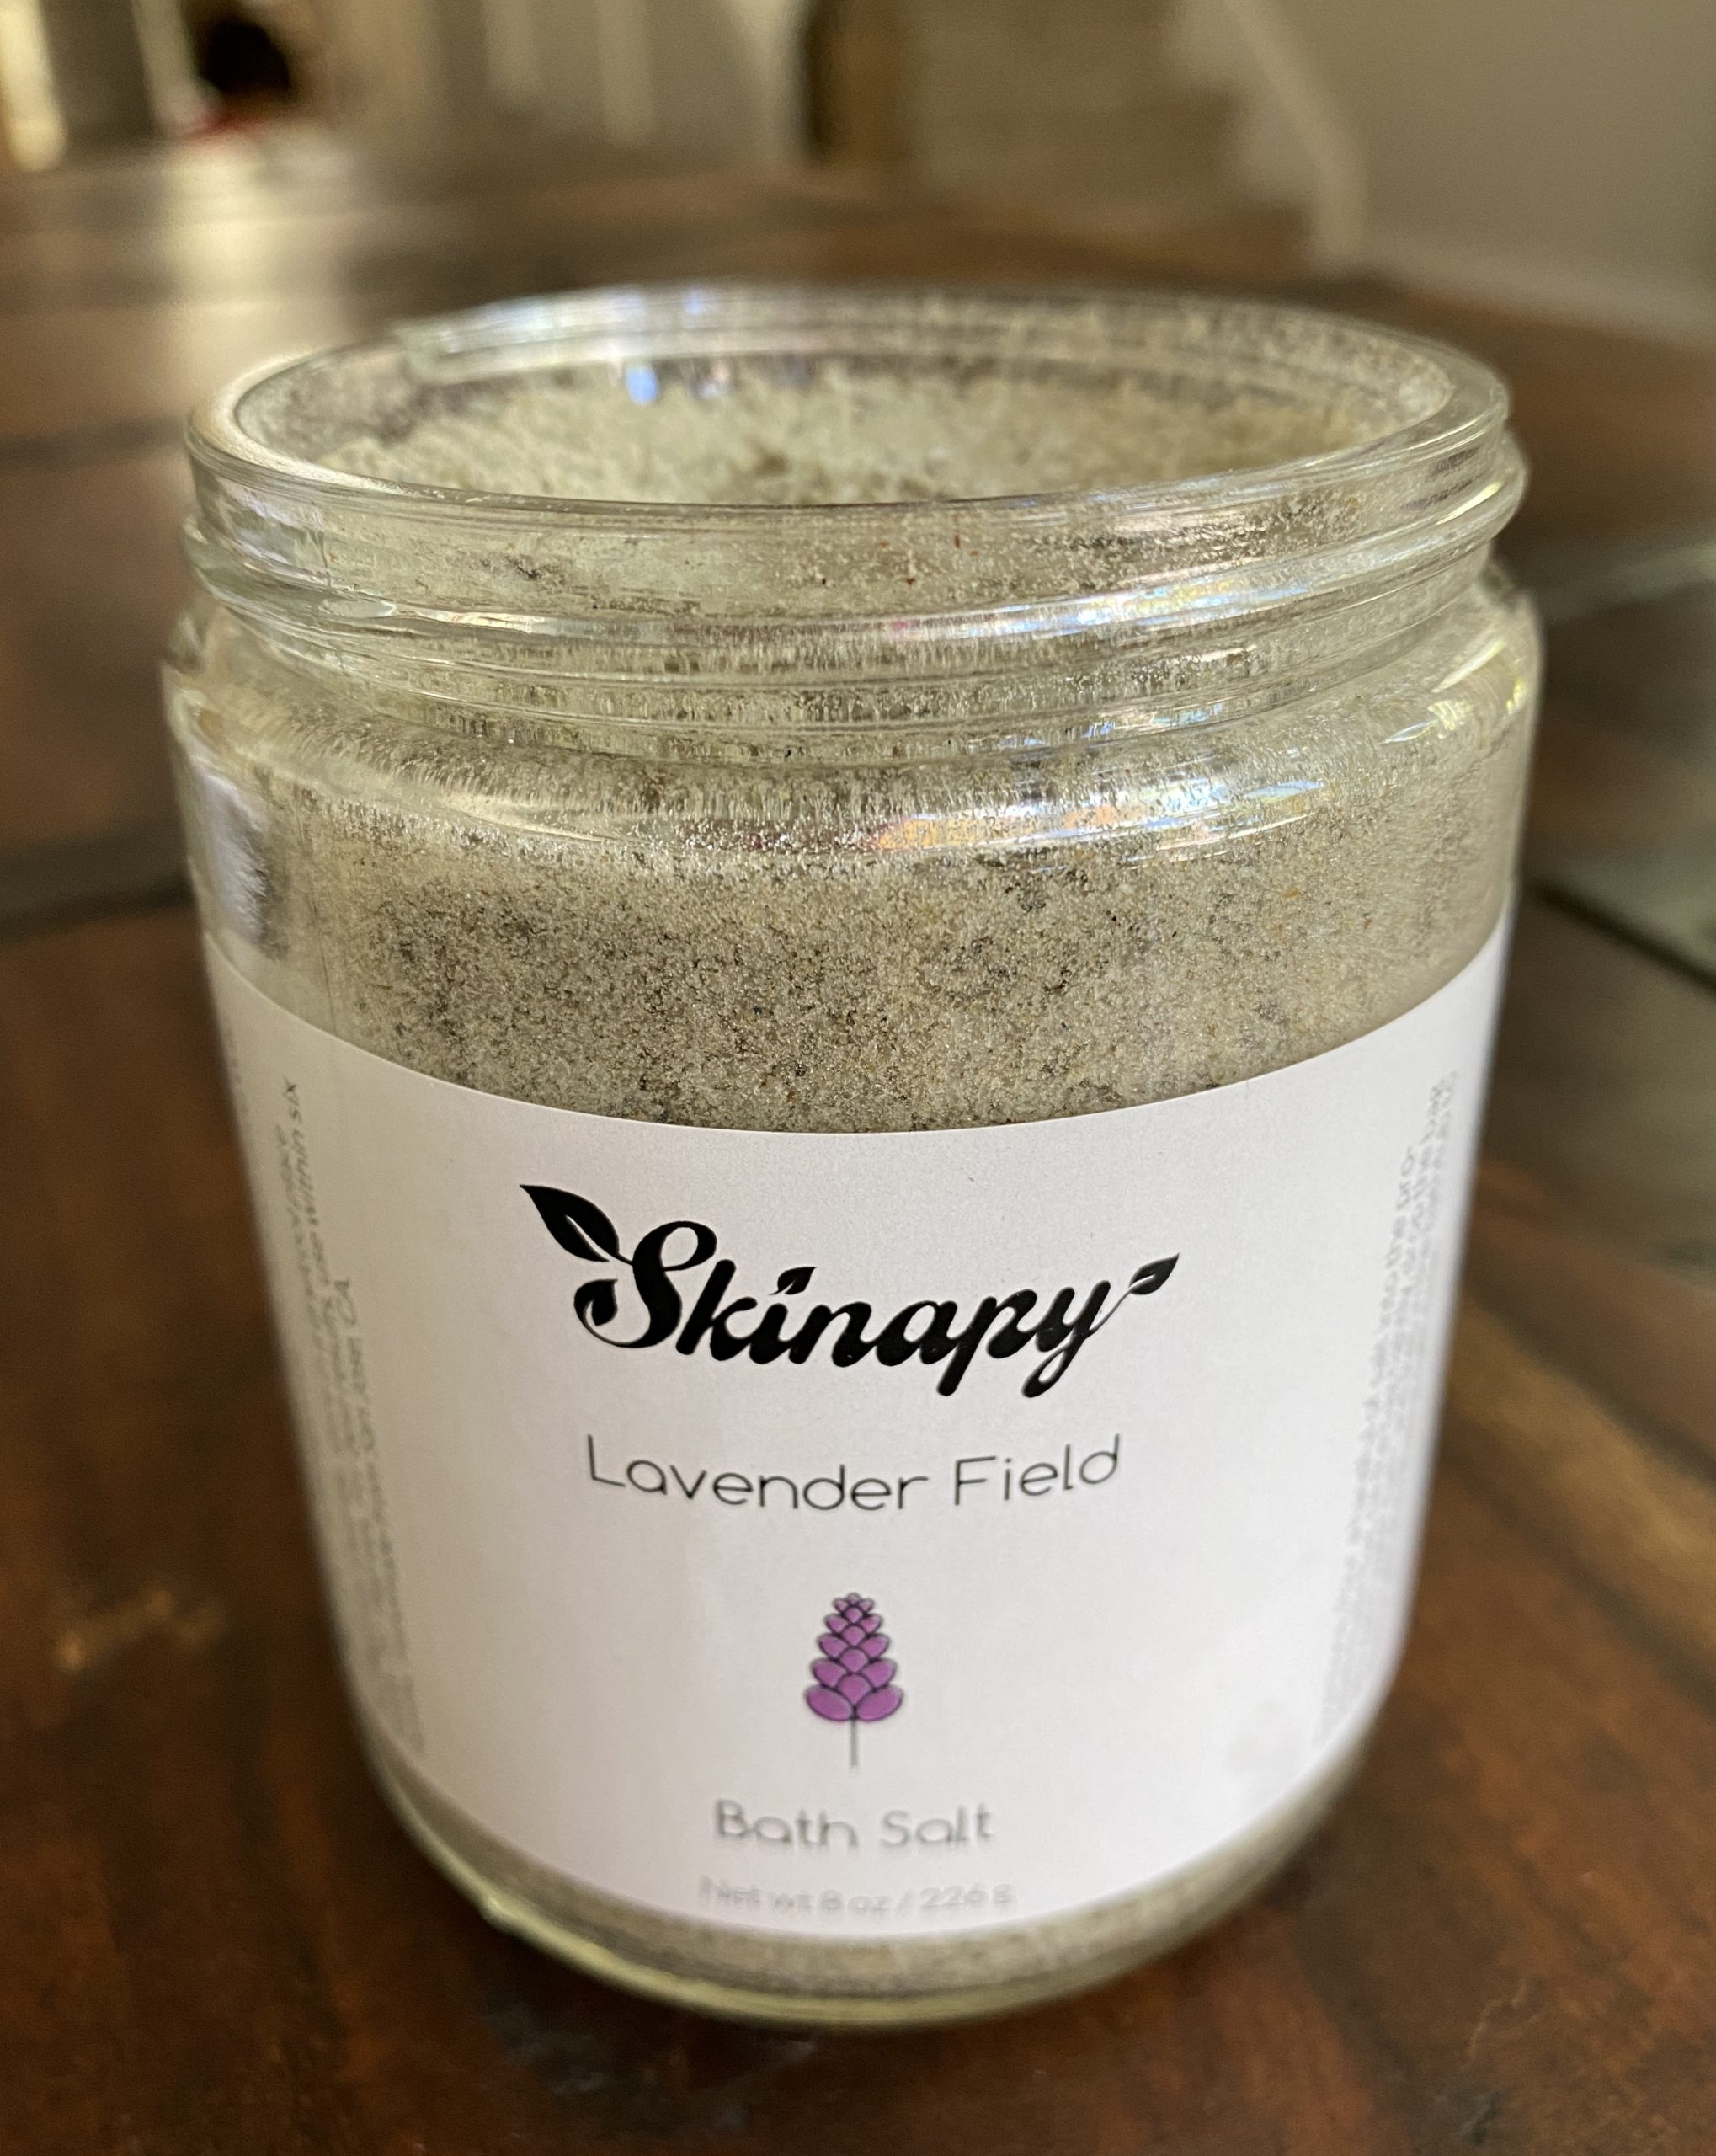 Skinapy Lavender Field Bath salts